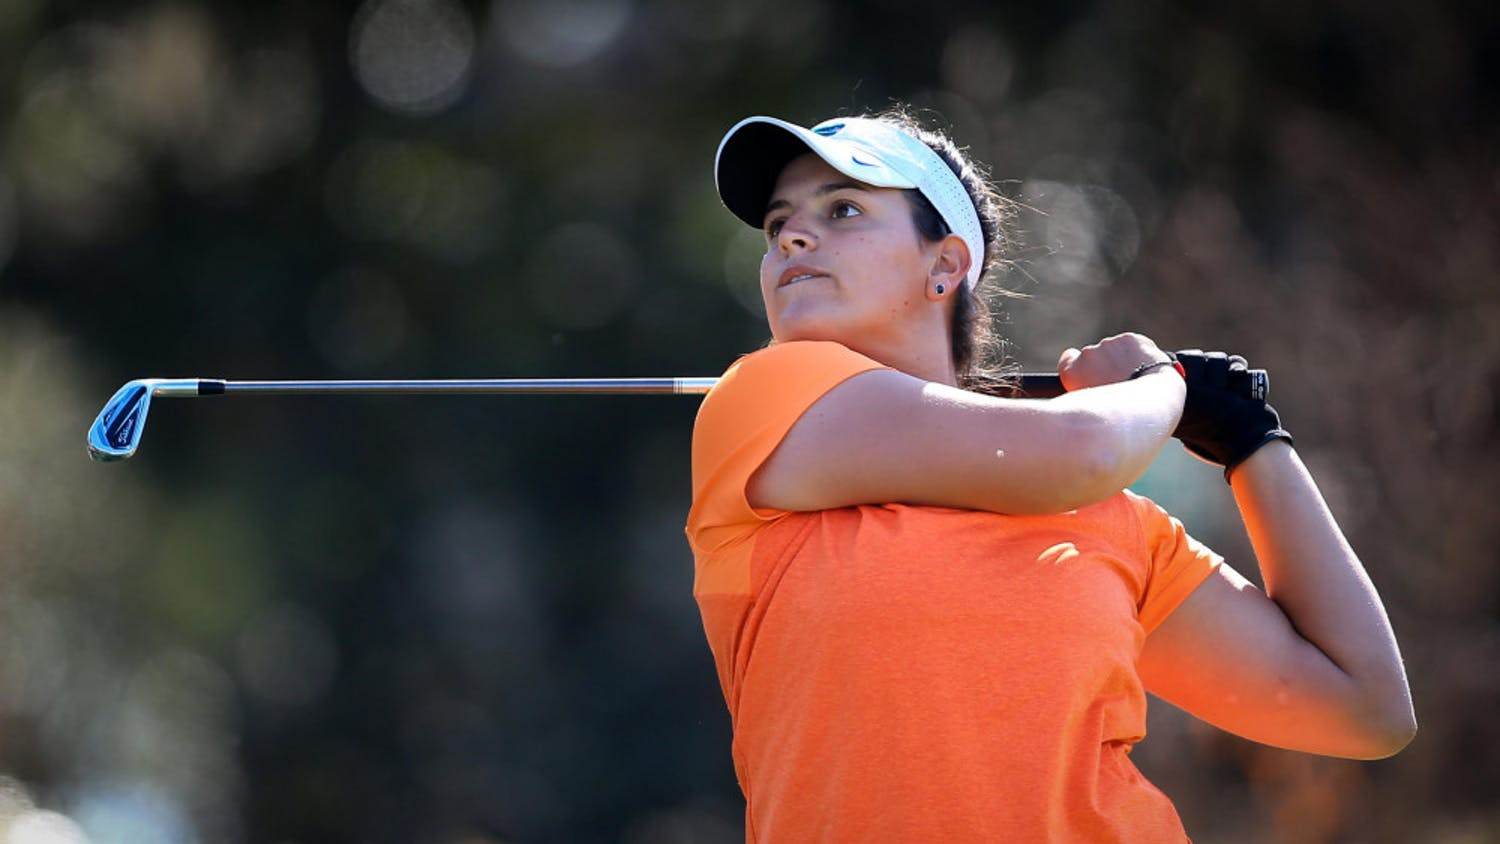 Maria Torres watches her shot during the SunTrust Gator Women's Golf Invitational on Saturday, March 11, 2017 at the Mark Bostick Golf Course in Gainesville.